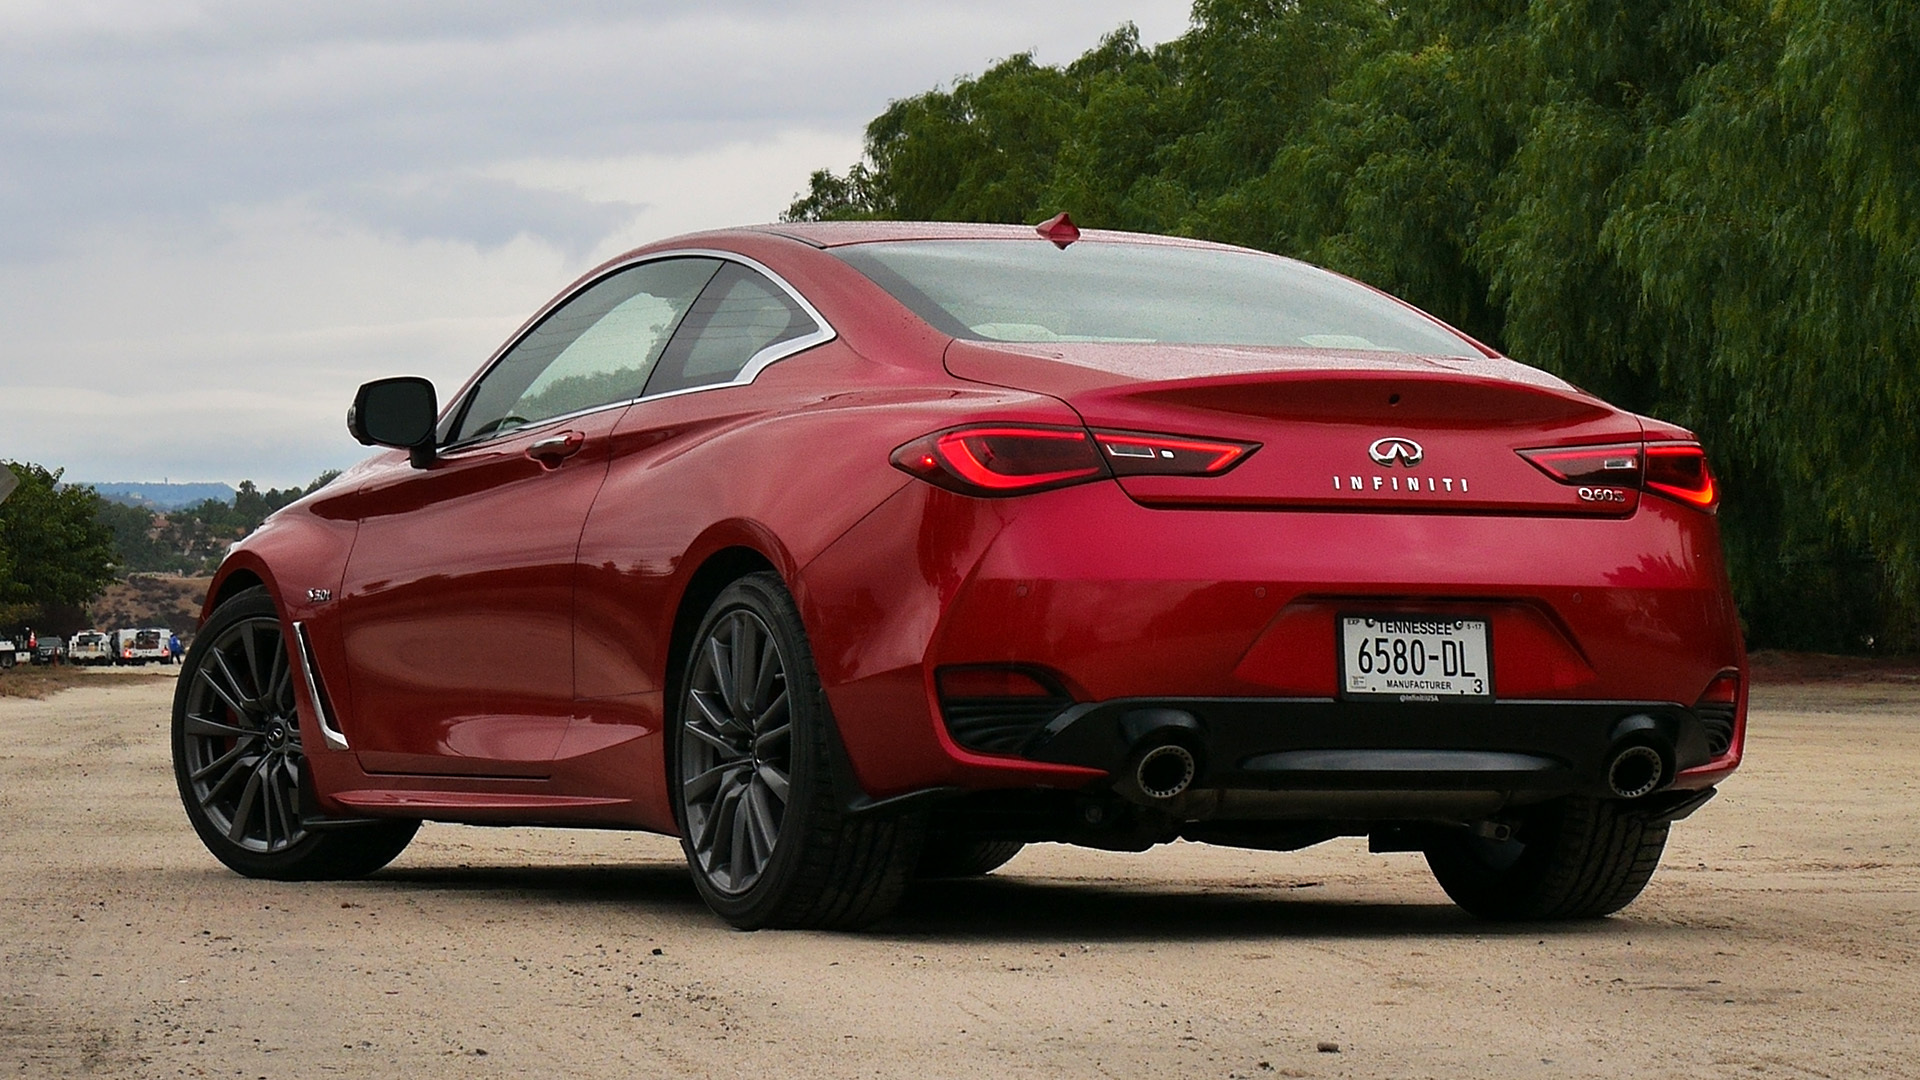 2017 Infiniti Q60 Red Exterior Rear View (Photo 18 of 32)